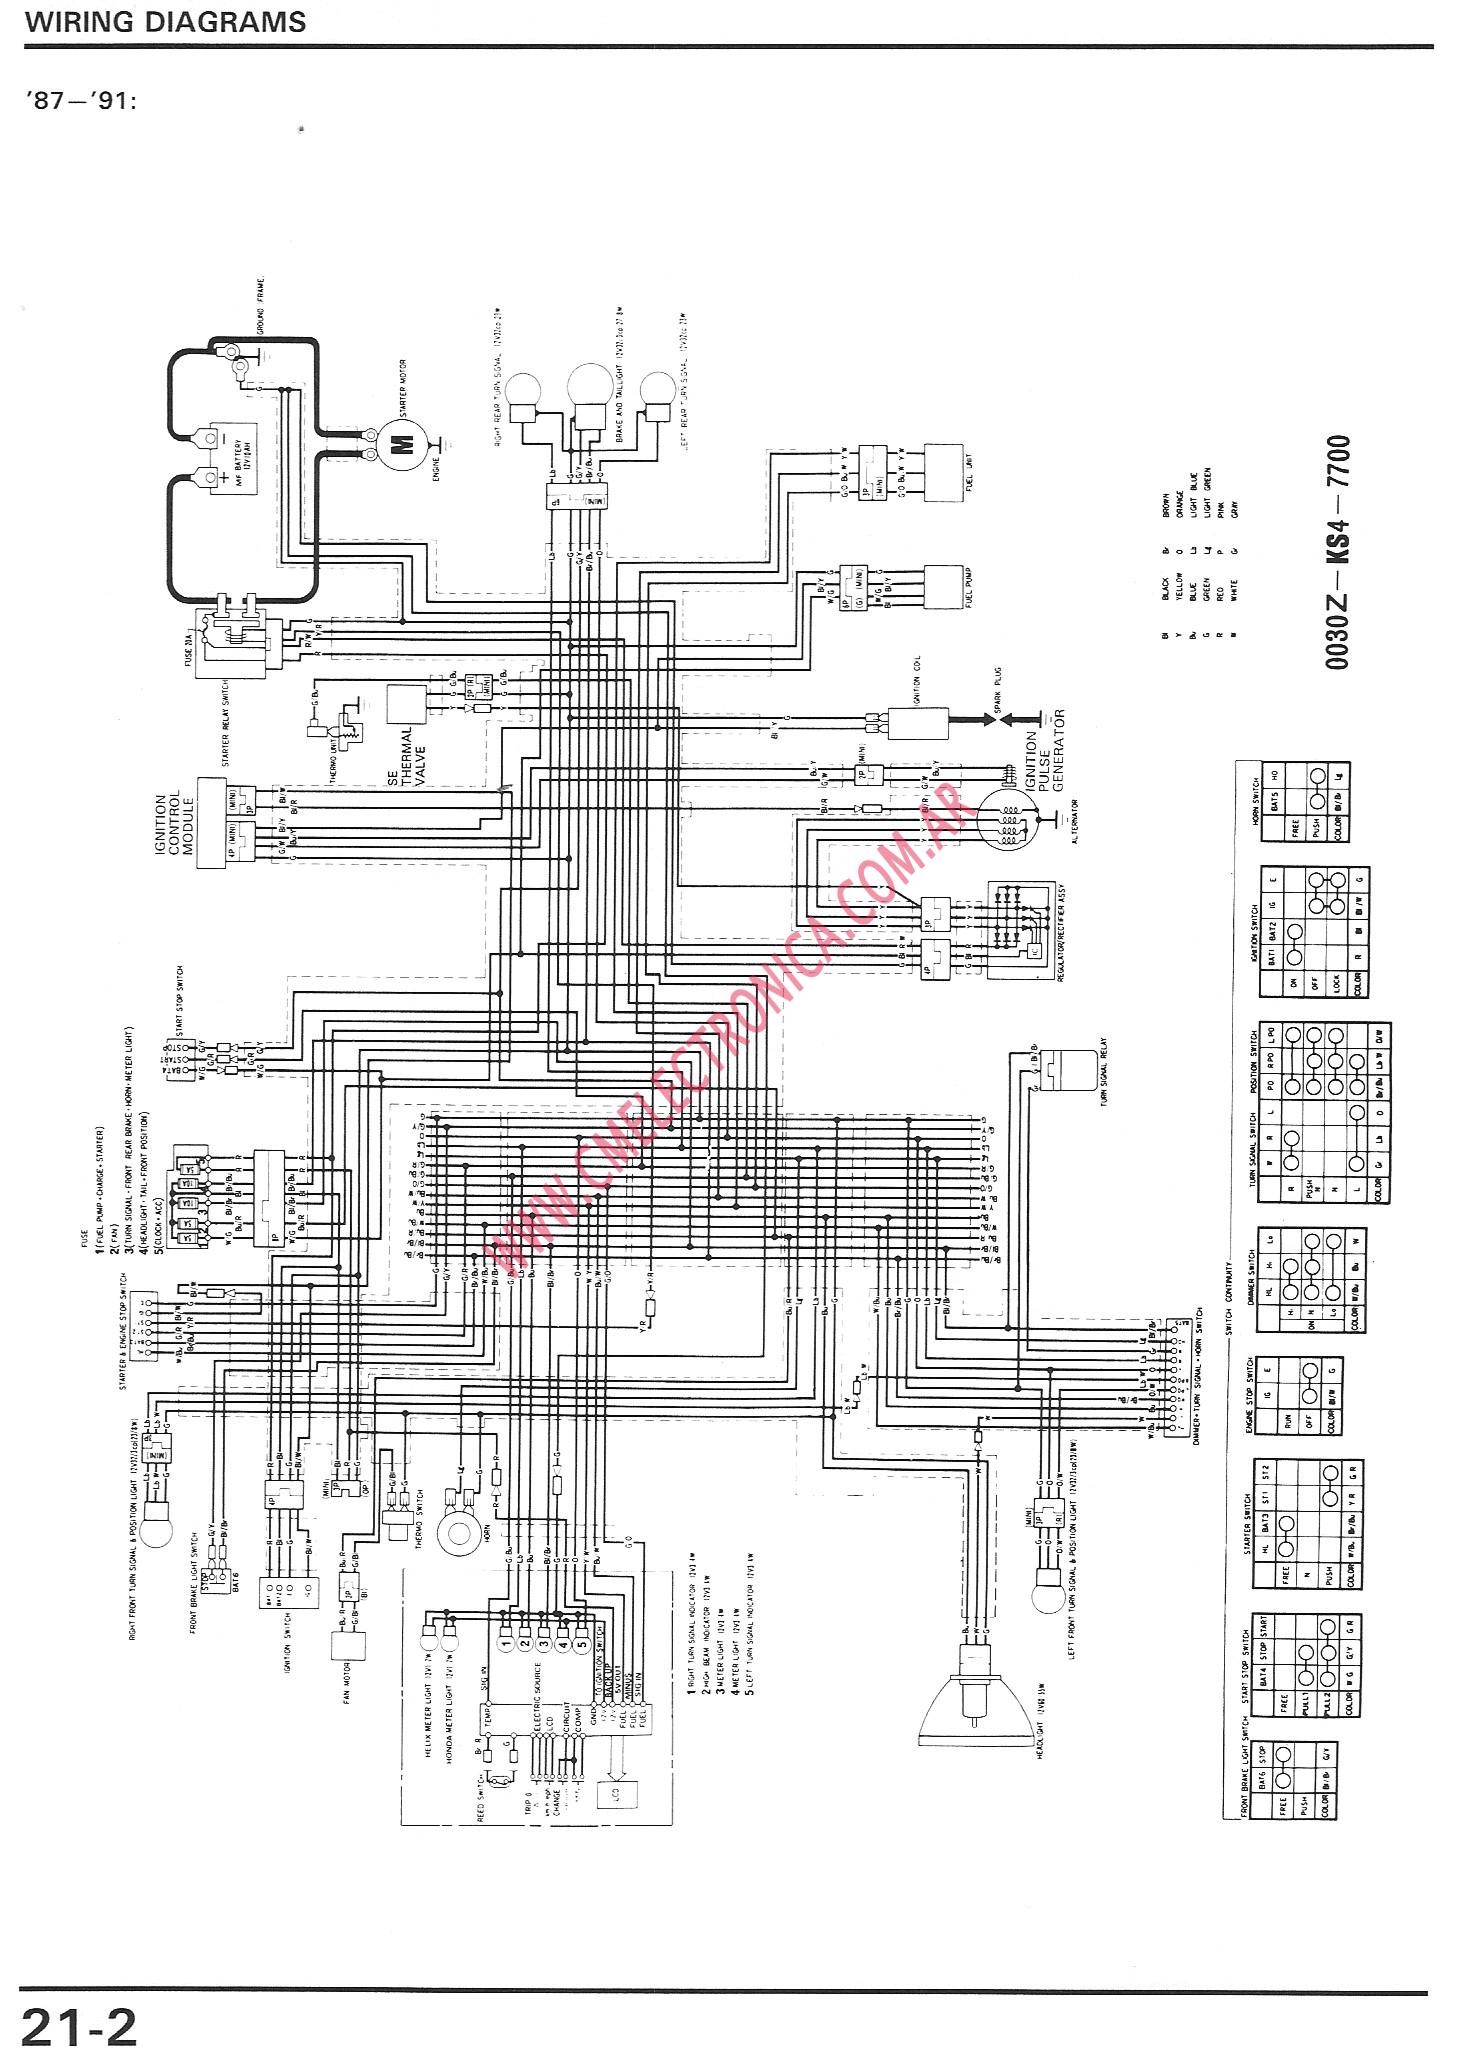 Daihatsu Wire Harness Download Applause Wiring Diagram Auto Electrical Related With